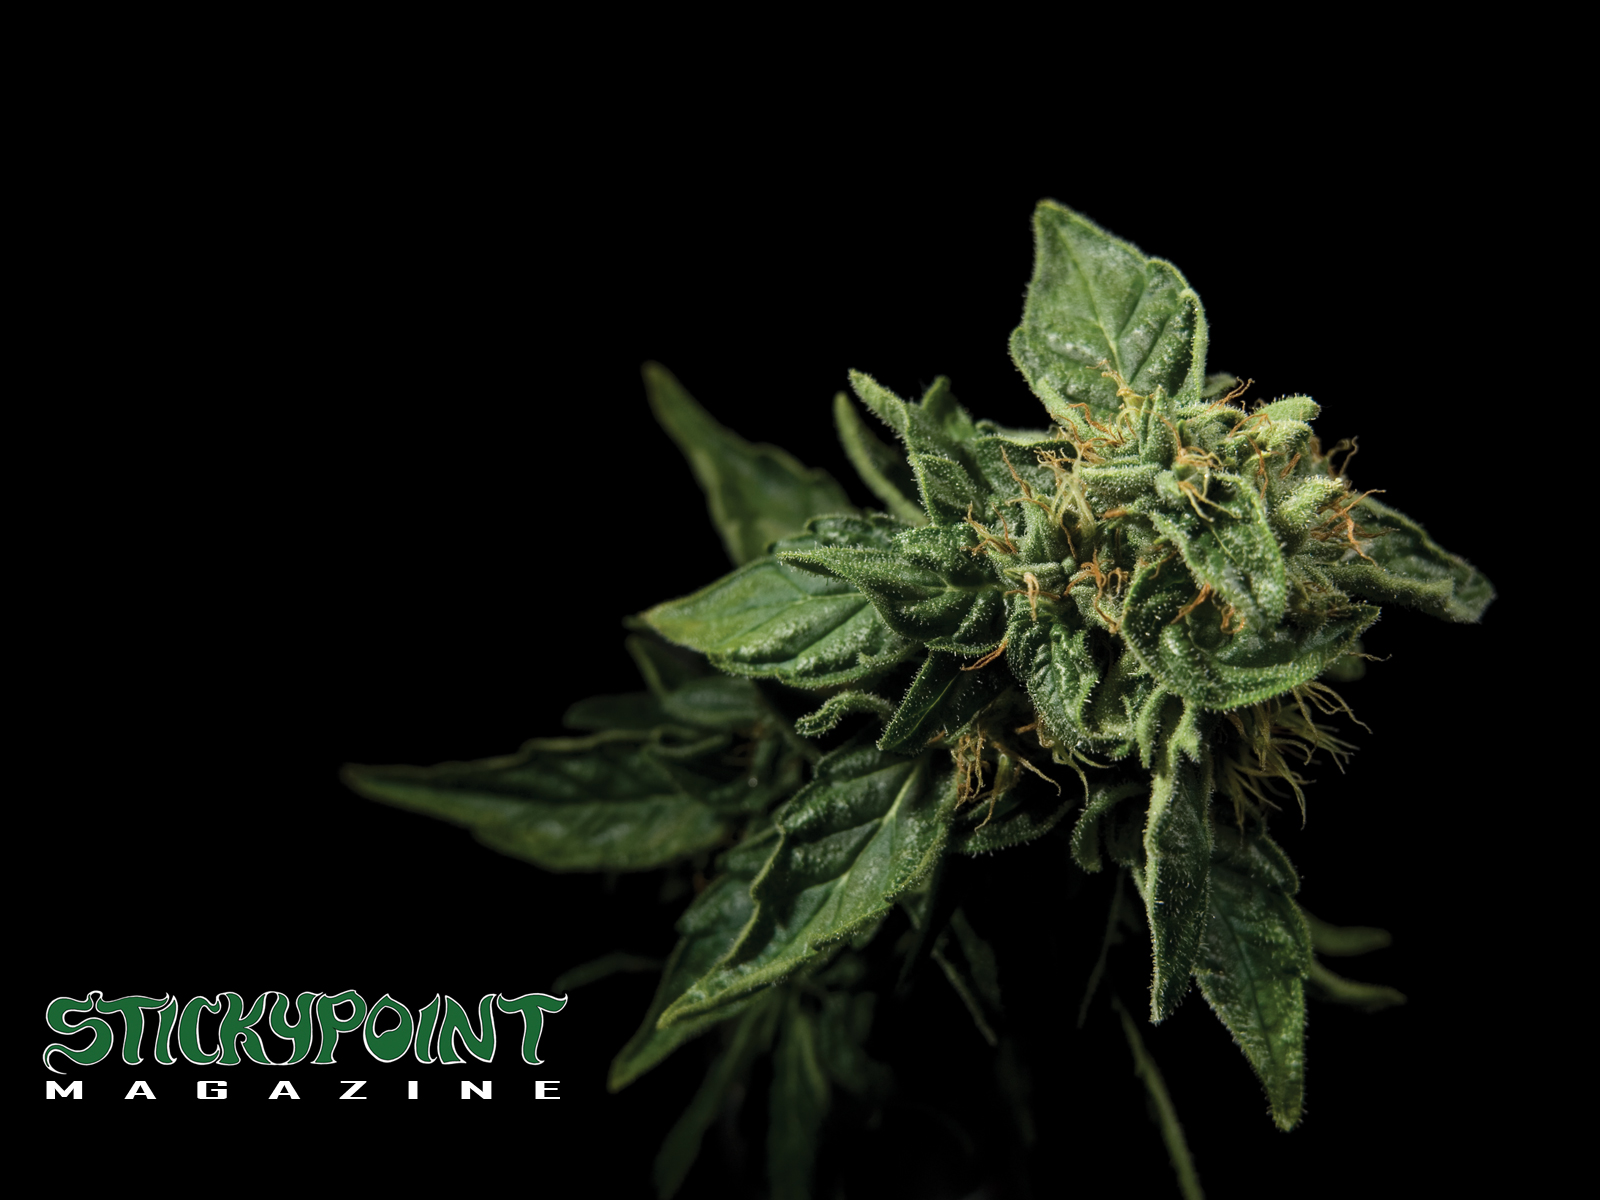 cannabis plant wallpaper black - photo #17